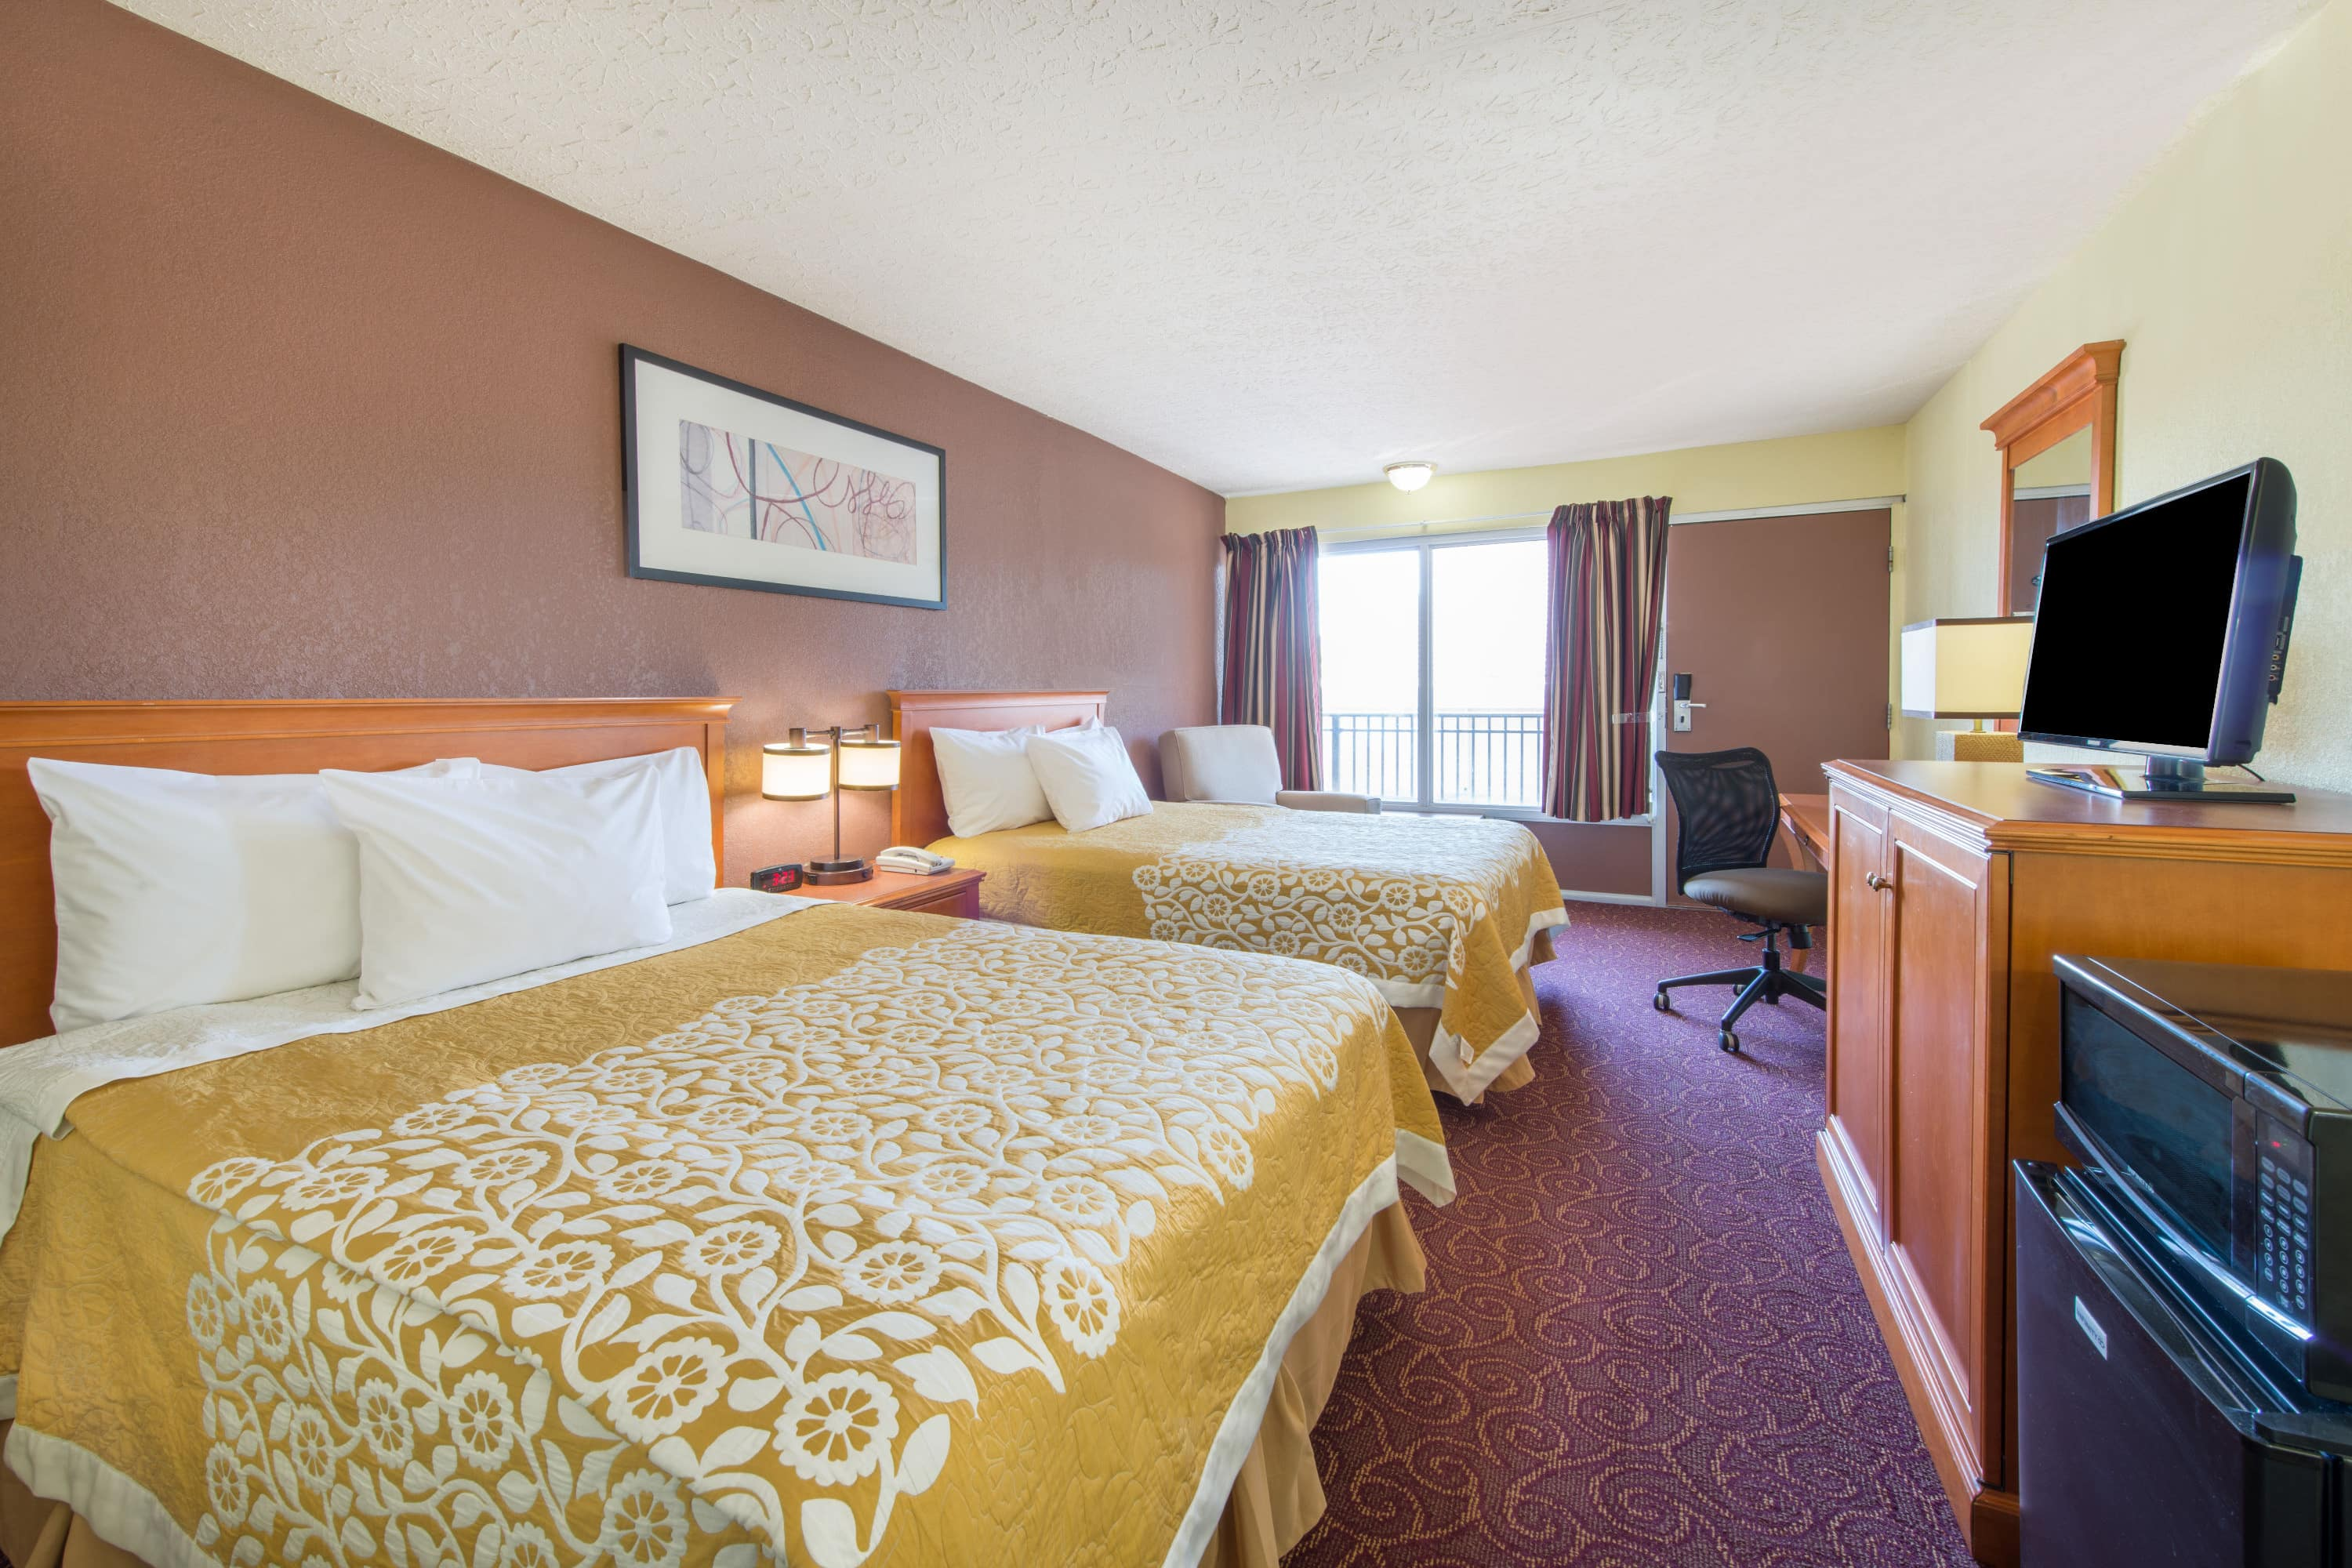 Guest room at the Days Inn Frankfort in Frankfort, Kentucky